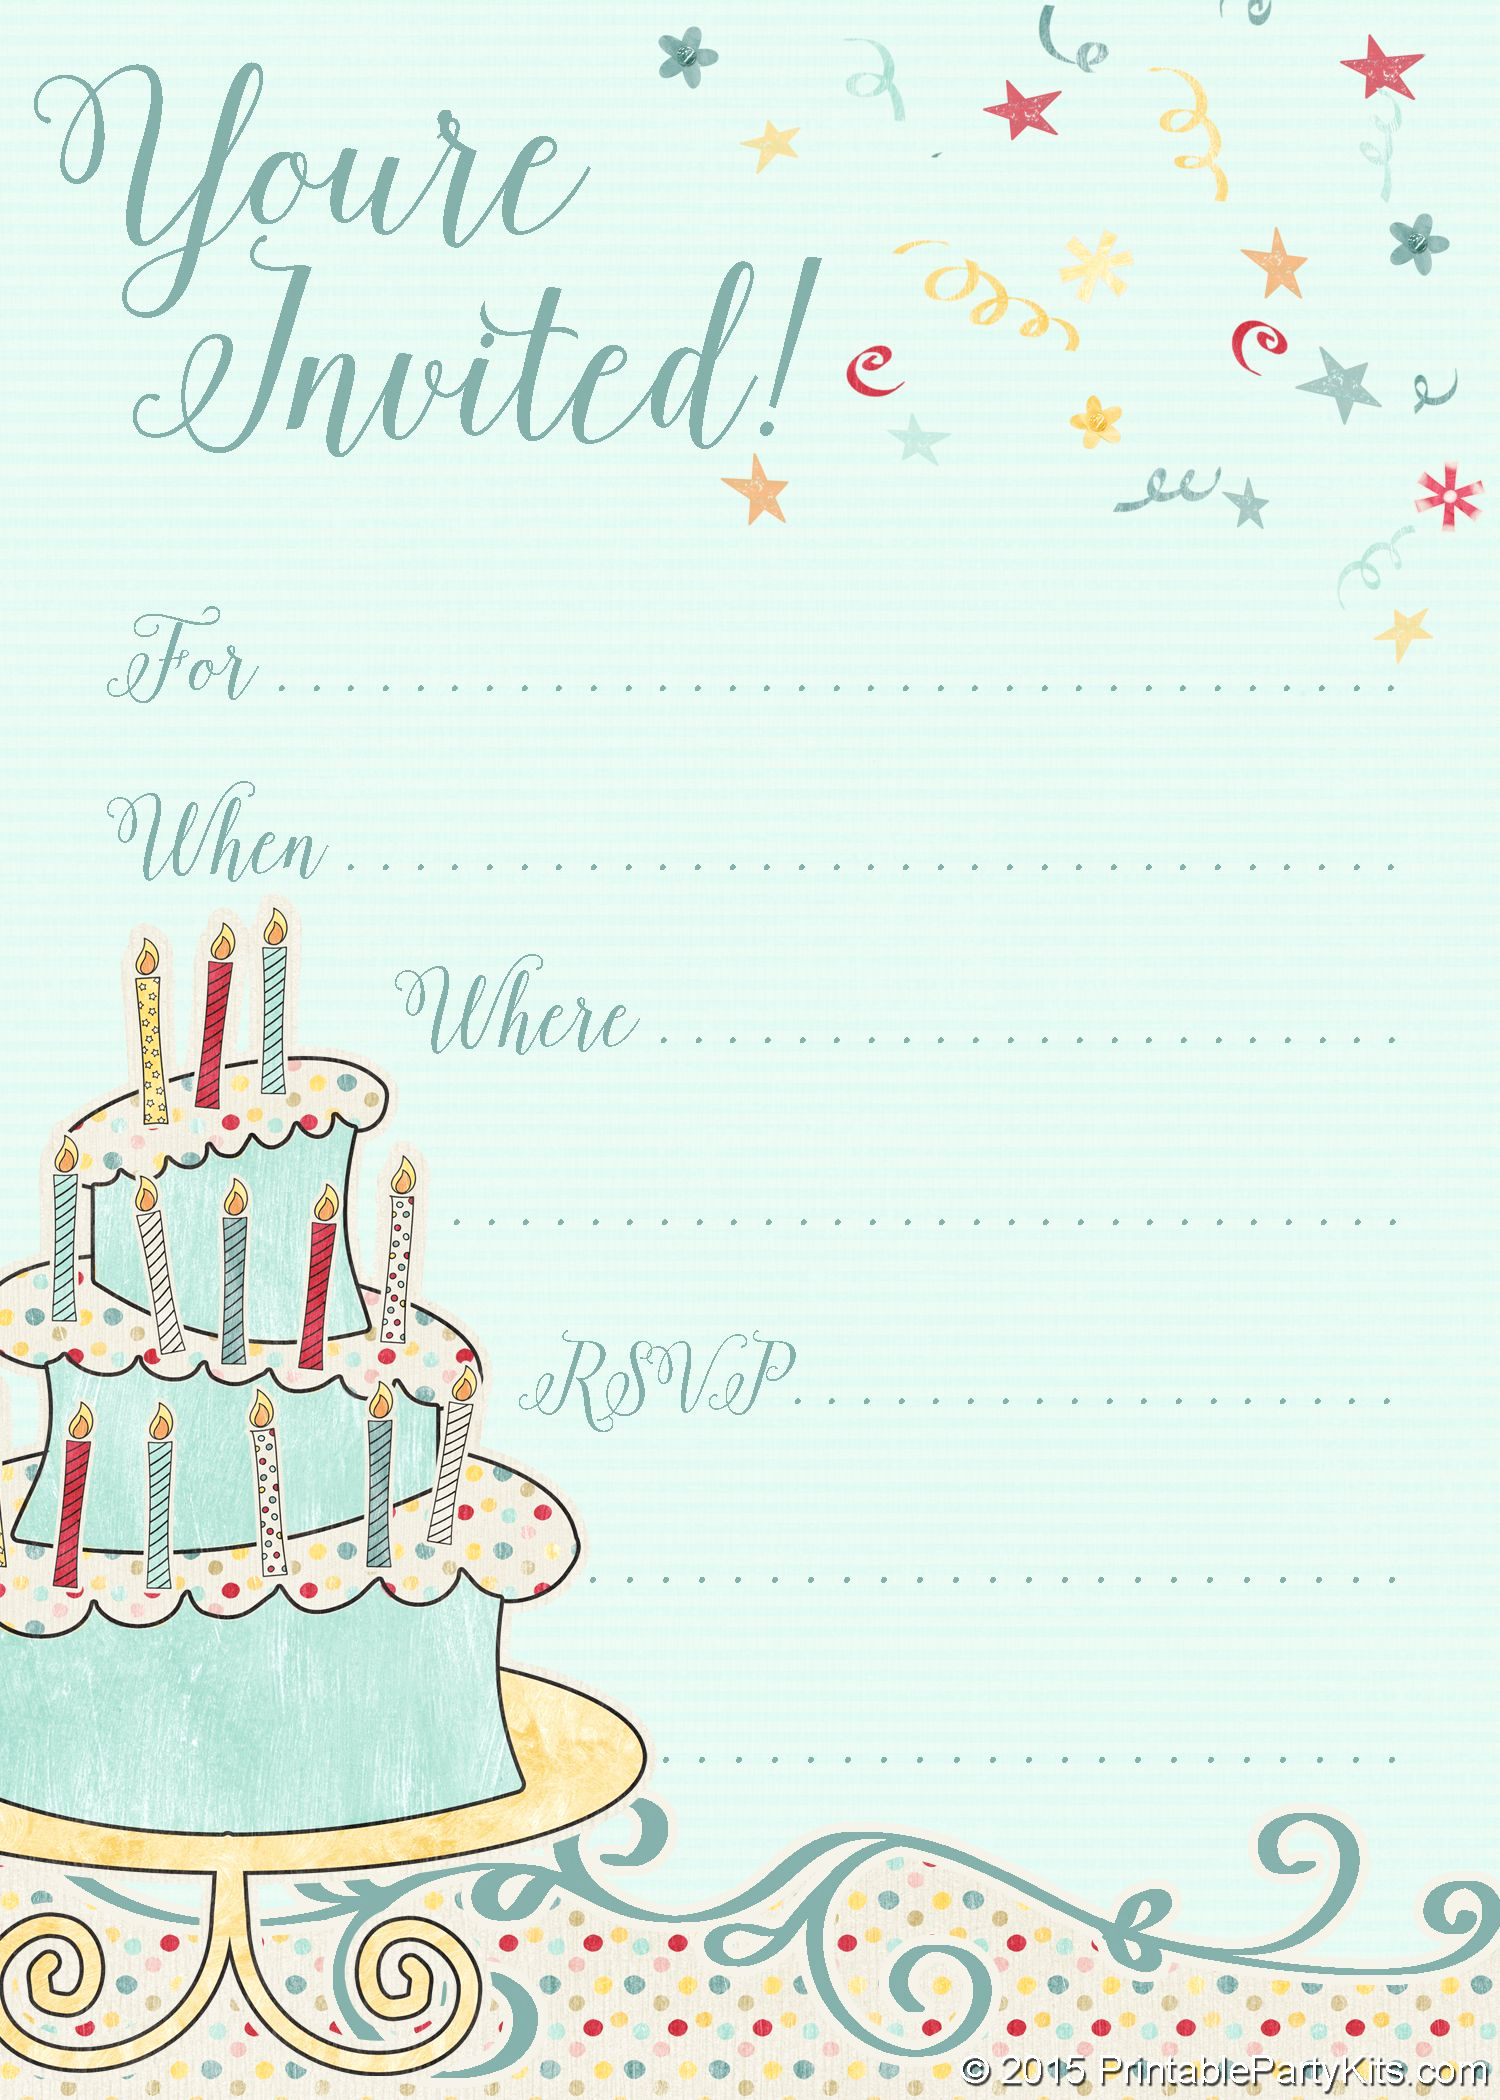 Birthday Invitation Card Template Luxury Free Printable Whimsical Birthday Party Invitation